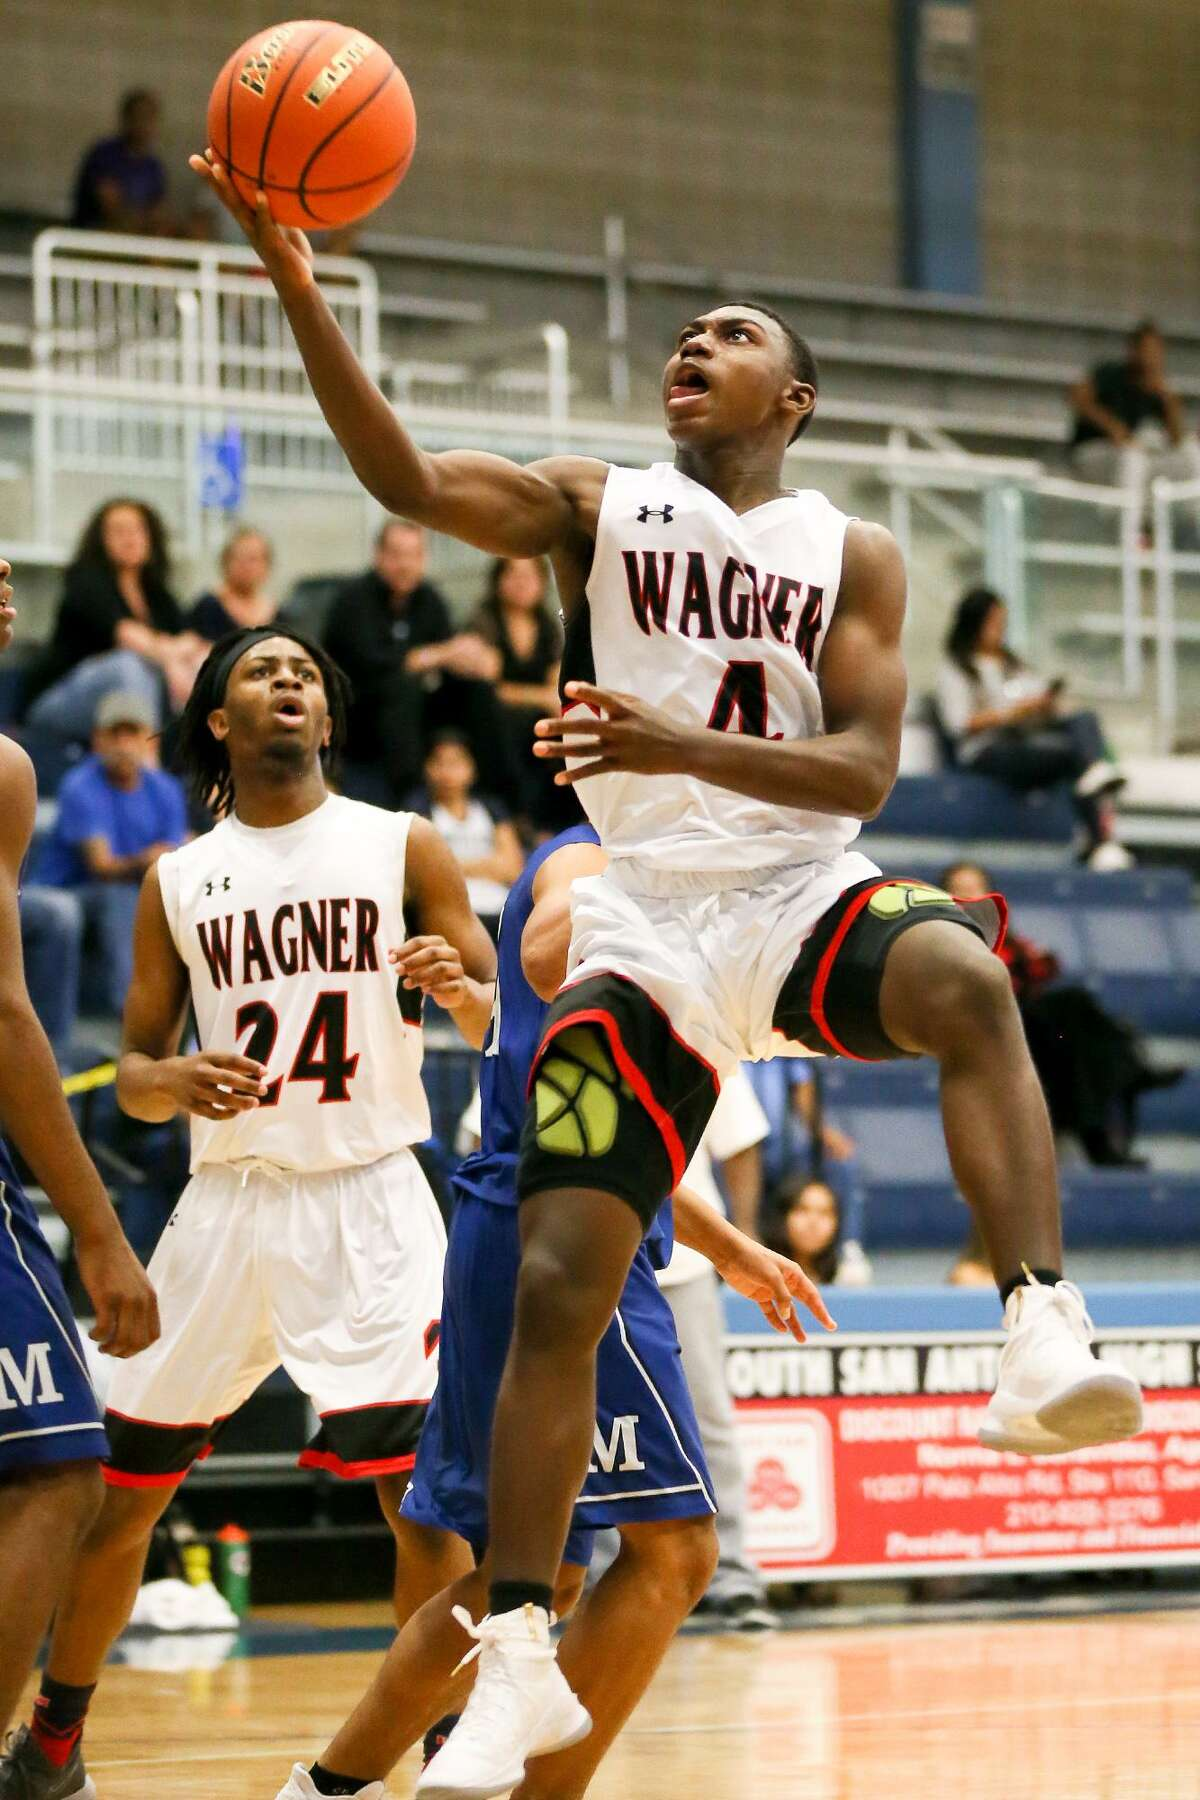 Wagner's Jalen Jackson drives to the basket during their semifinal game with MacArthur in the 2017 South San Antonio Bobcat Boys Varsiy Basketball Tournament game with MacArthur at the South San Athletic Center on Saturday, Dec. 2, 2017. Jackson was named MVP of the tournament after Wagner beat Silsbee 100-68 in the championship game. MARVIN PFEIFFER/mpfeiffer@express-news.net